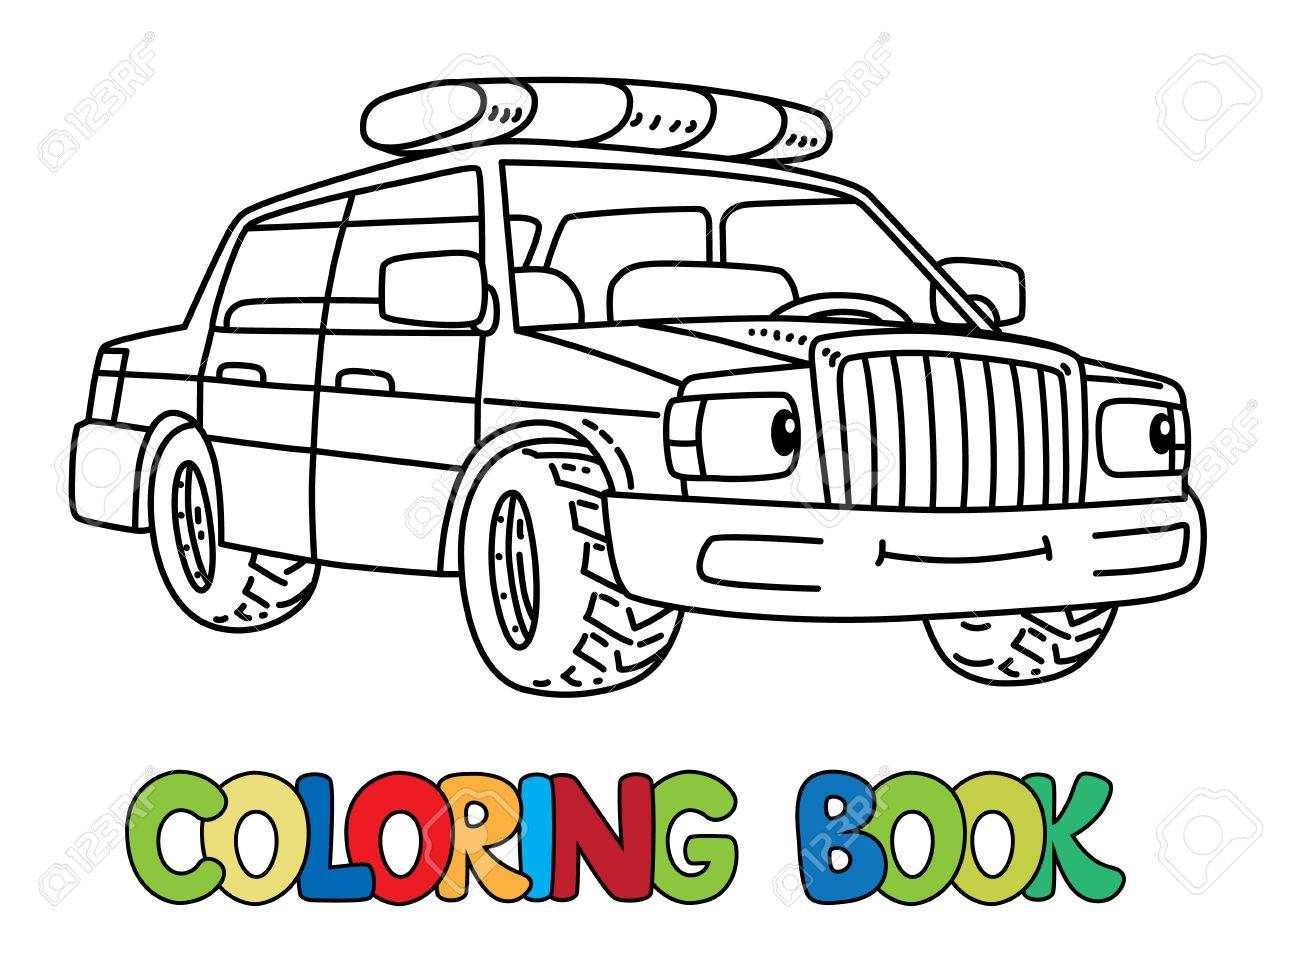 - Police Car Coloring Book For Kids. Small Funny Vector Cute Vehicle